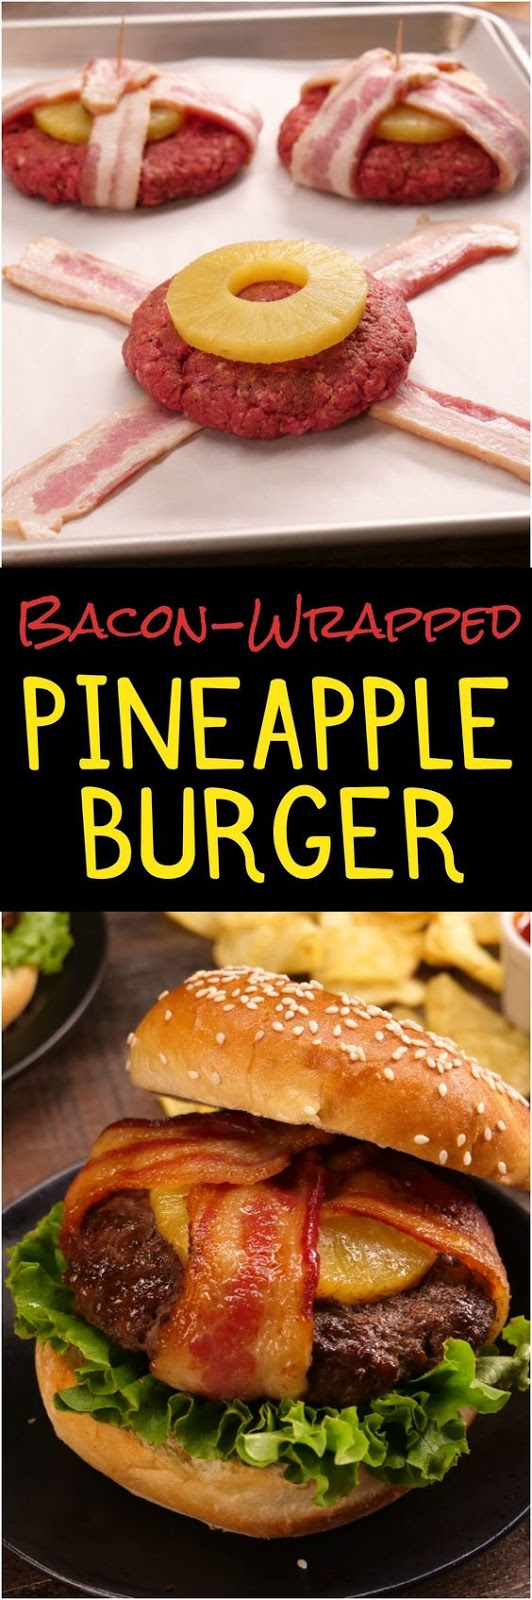 Bacon-Wrapped Pineapple Burgers